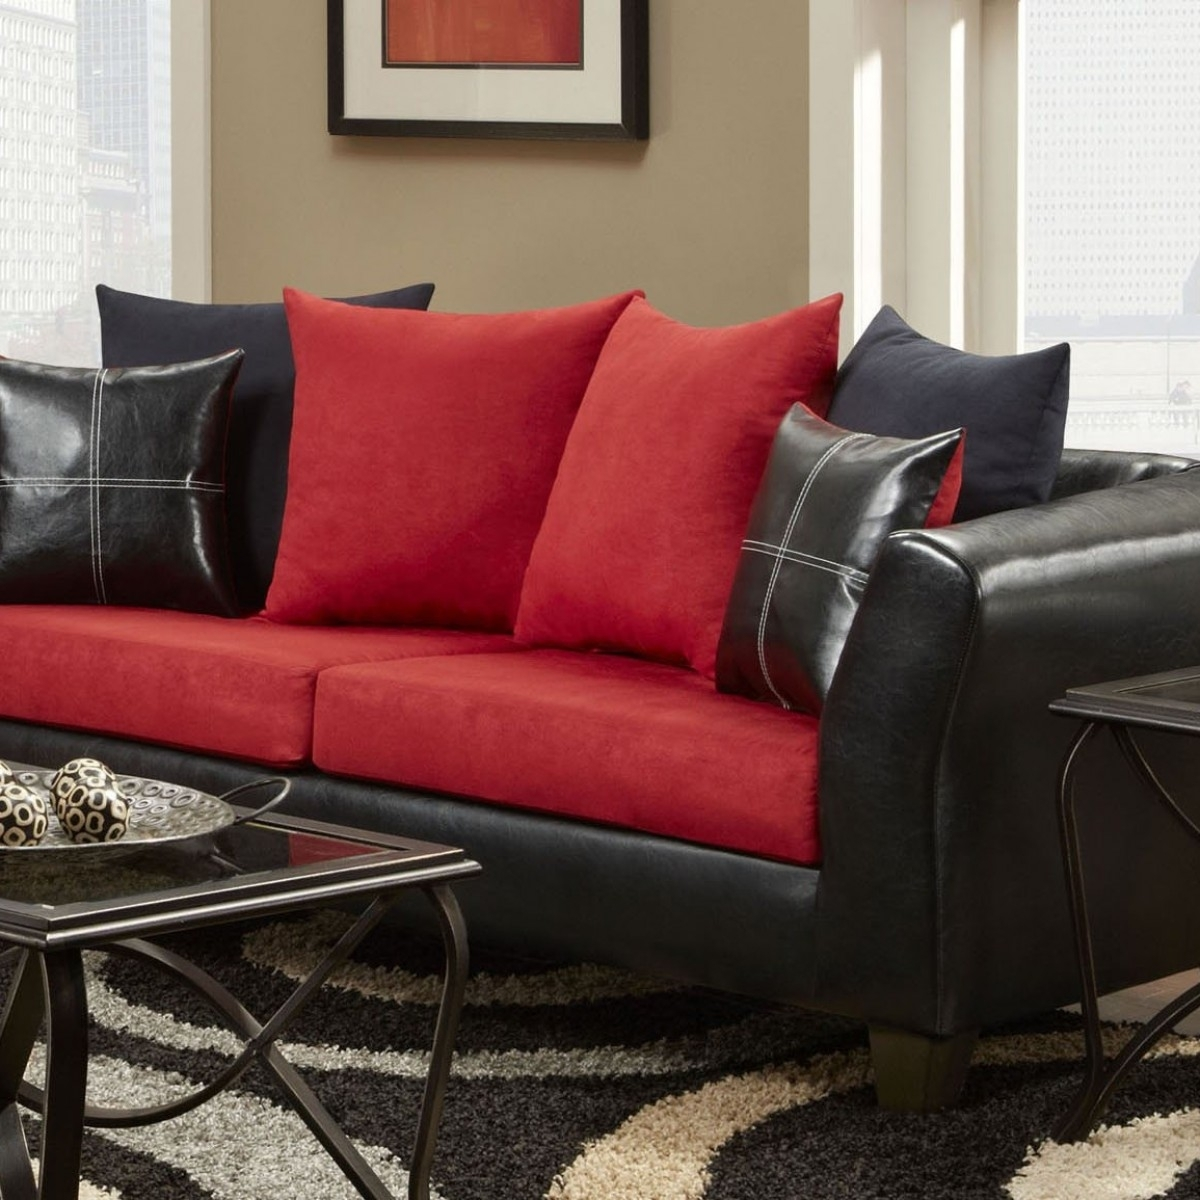 Cheap Sectional Sofas Design — Cabinets, Beds, Sofas And regarding London Ontario Sectional Sofas (Image 1 of 10)